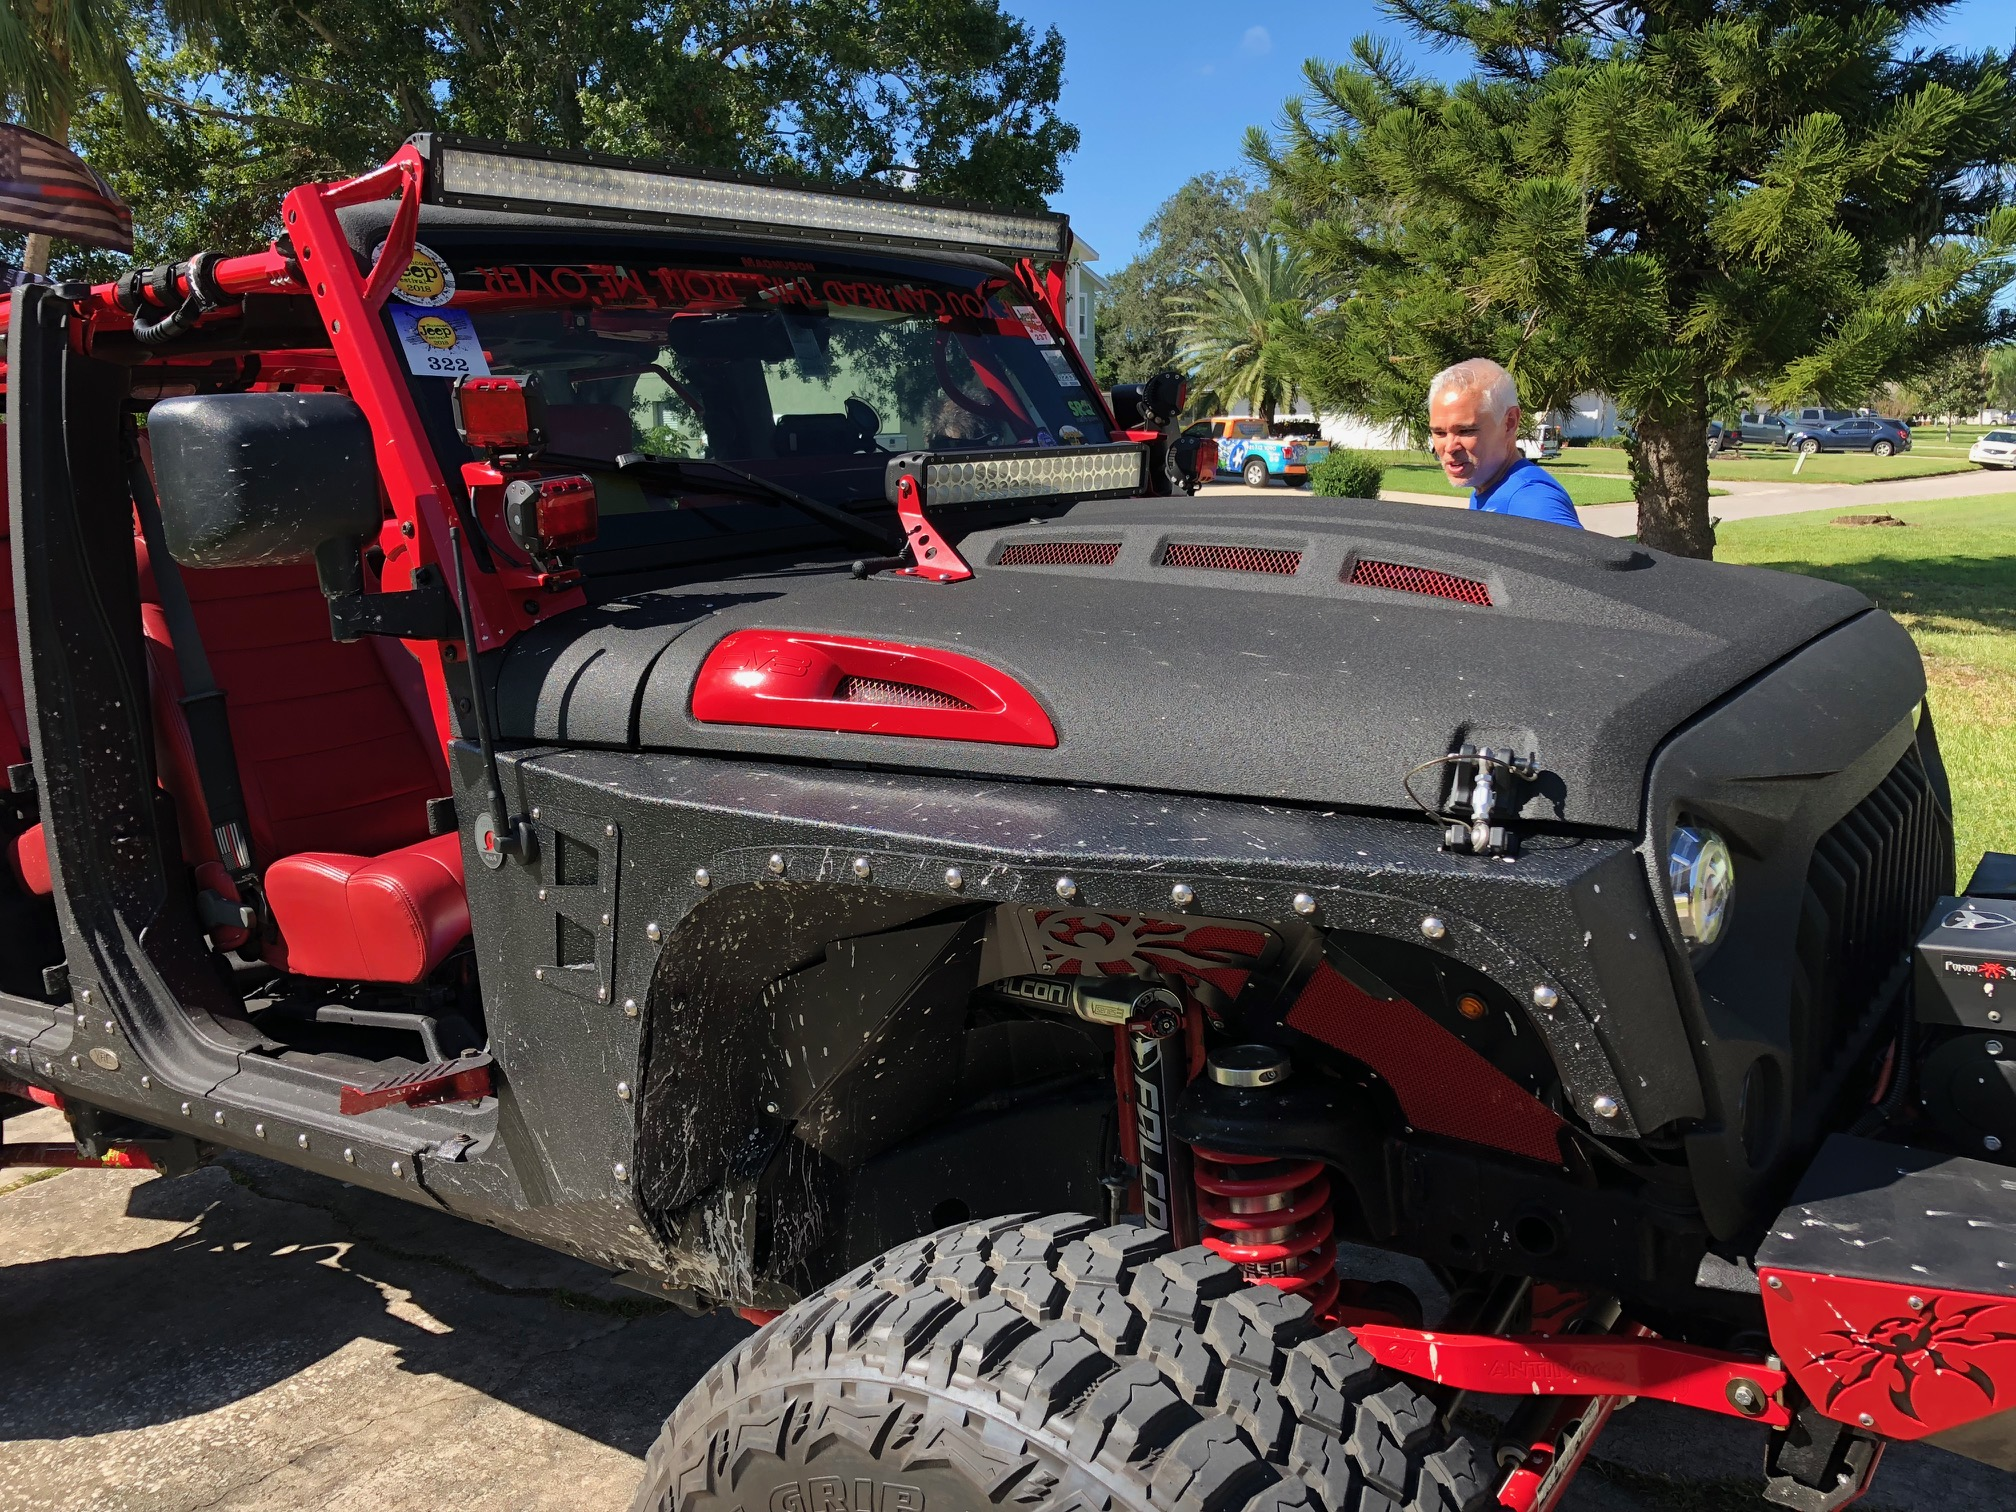 Black And Red Decked Out Sypder Co Jeep Wrangler Jk Gpr Dna